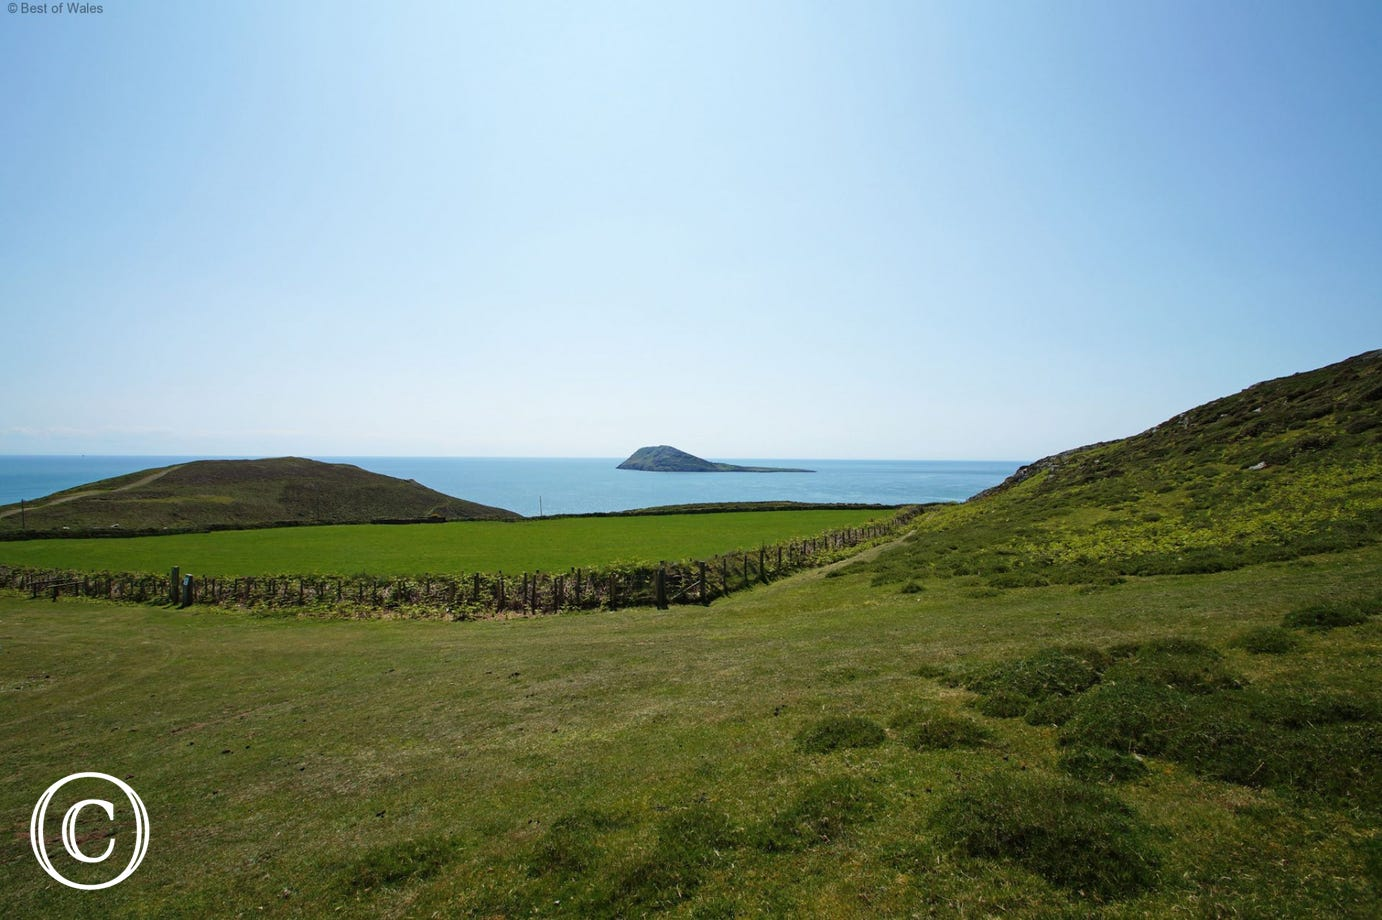 Bardsey Island (Ynys Enlli) - a little further along the coastal path - can also be visited by boat from Porth Meudwy